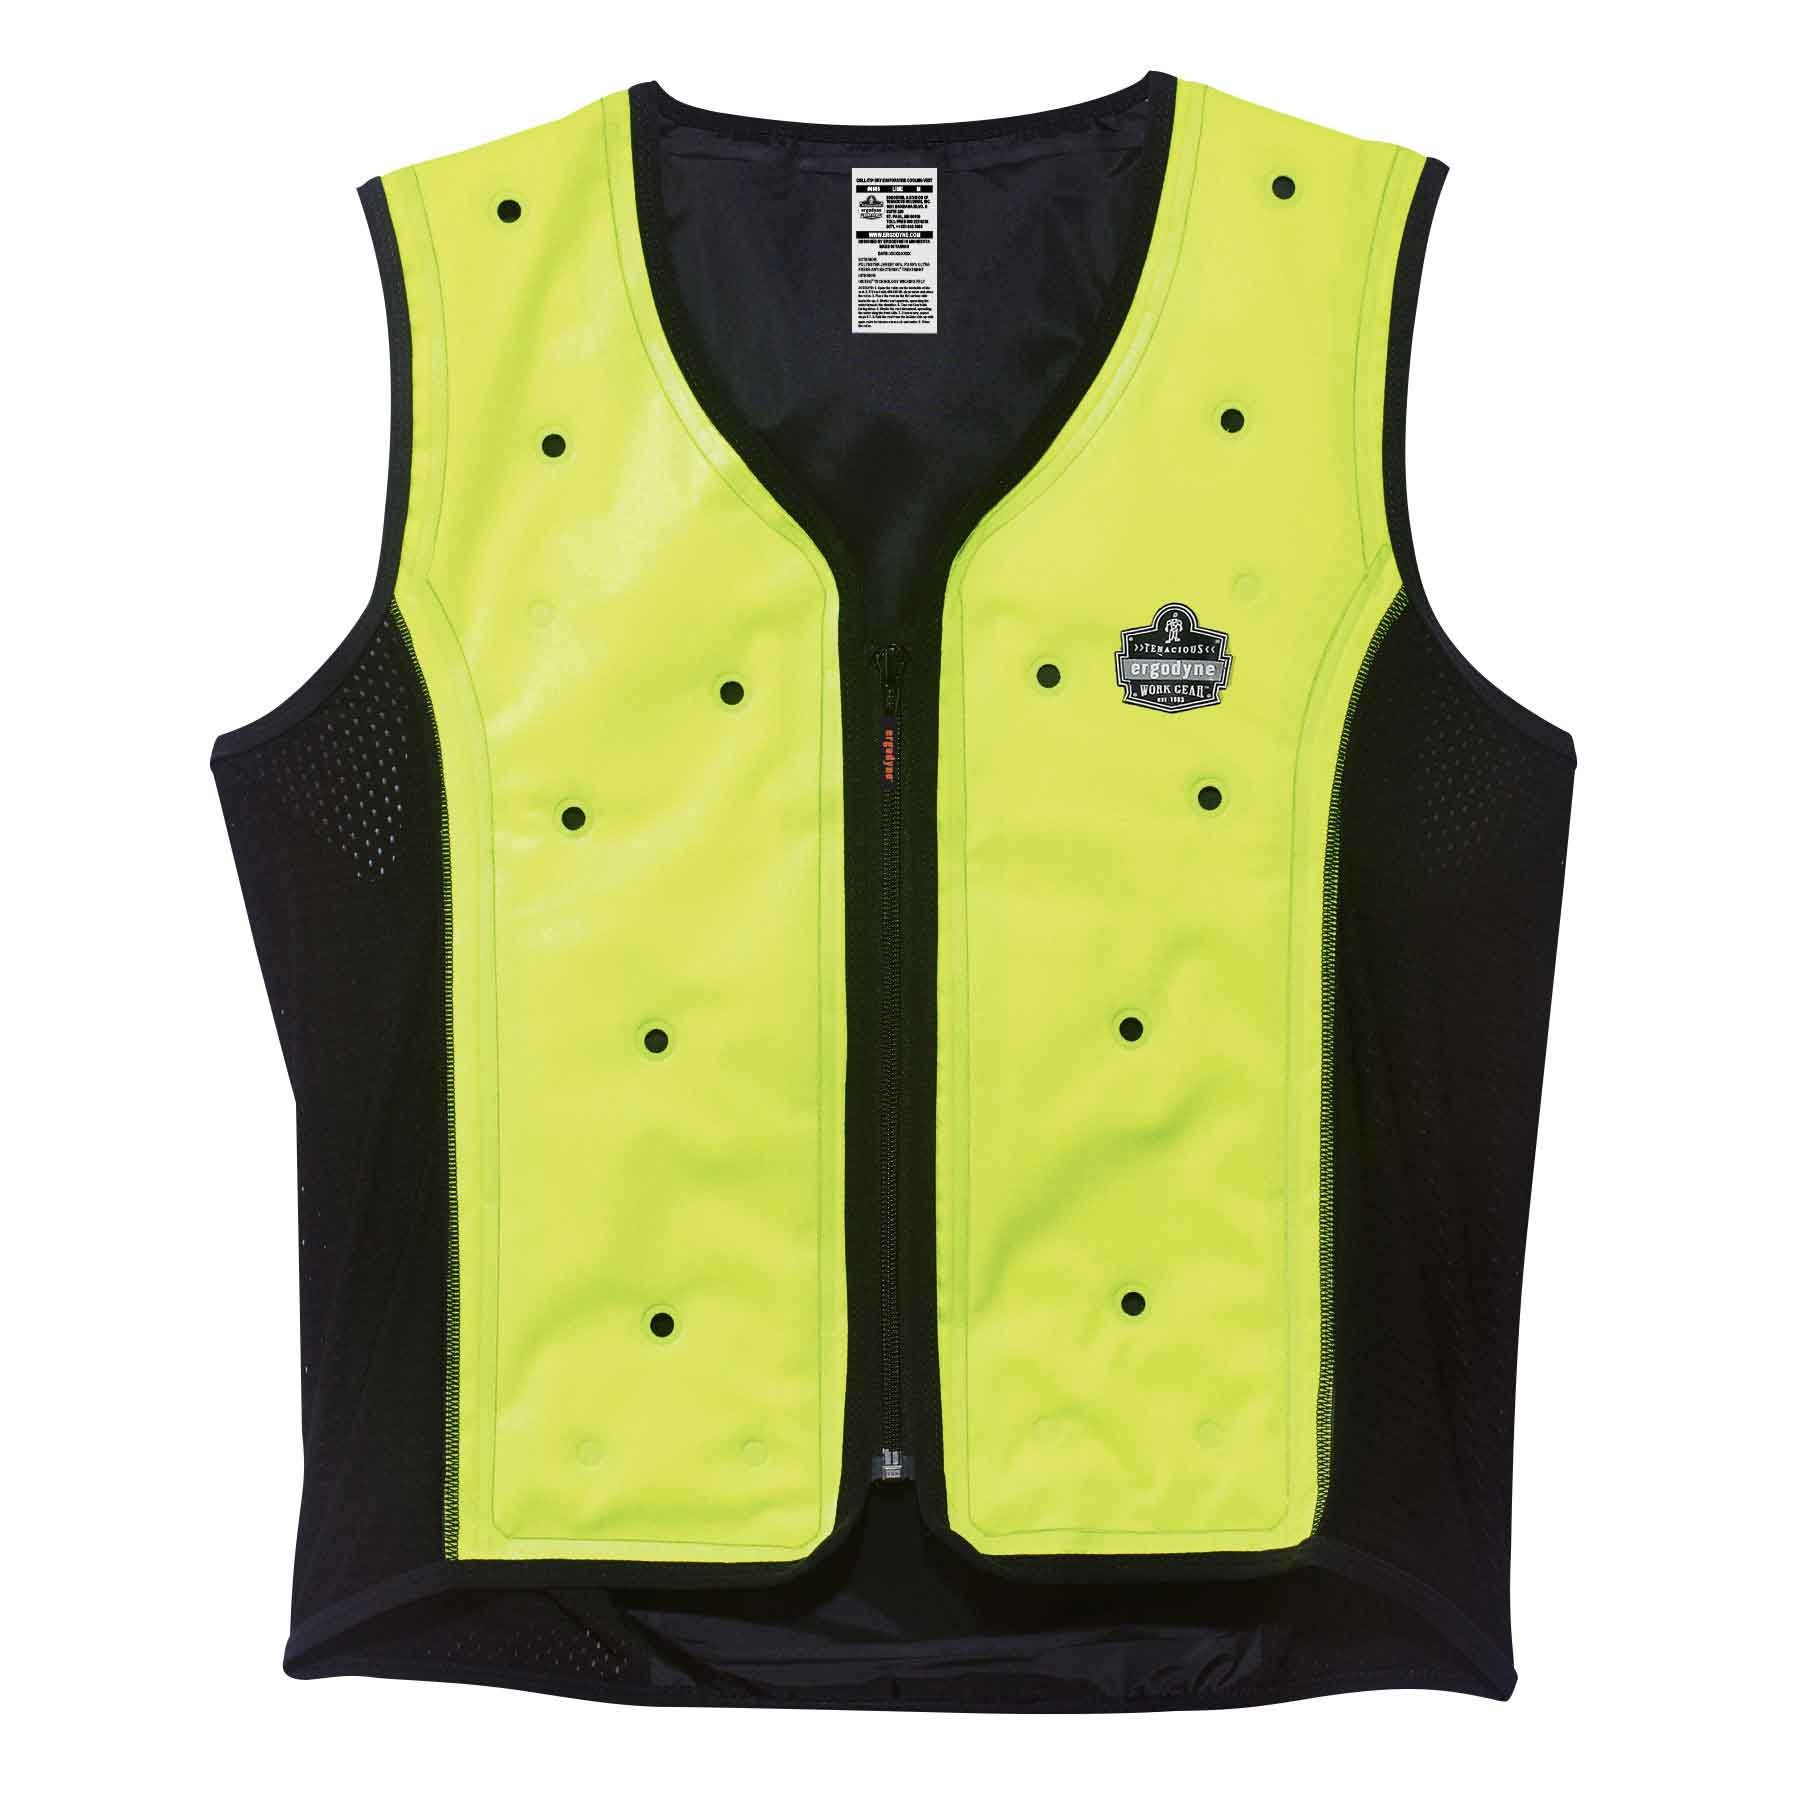 Evaporative Cooling Vest, Wearer Stays Cool and Dry, Breathable Comfort, Zipper Closure, Ergodyne Chill-Its 6685 by Ergodyne (Image #1)